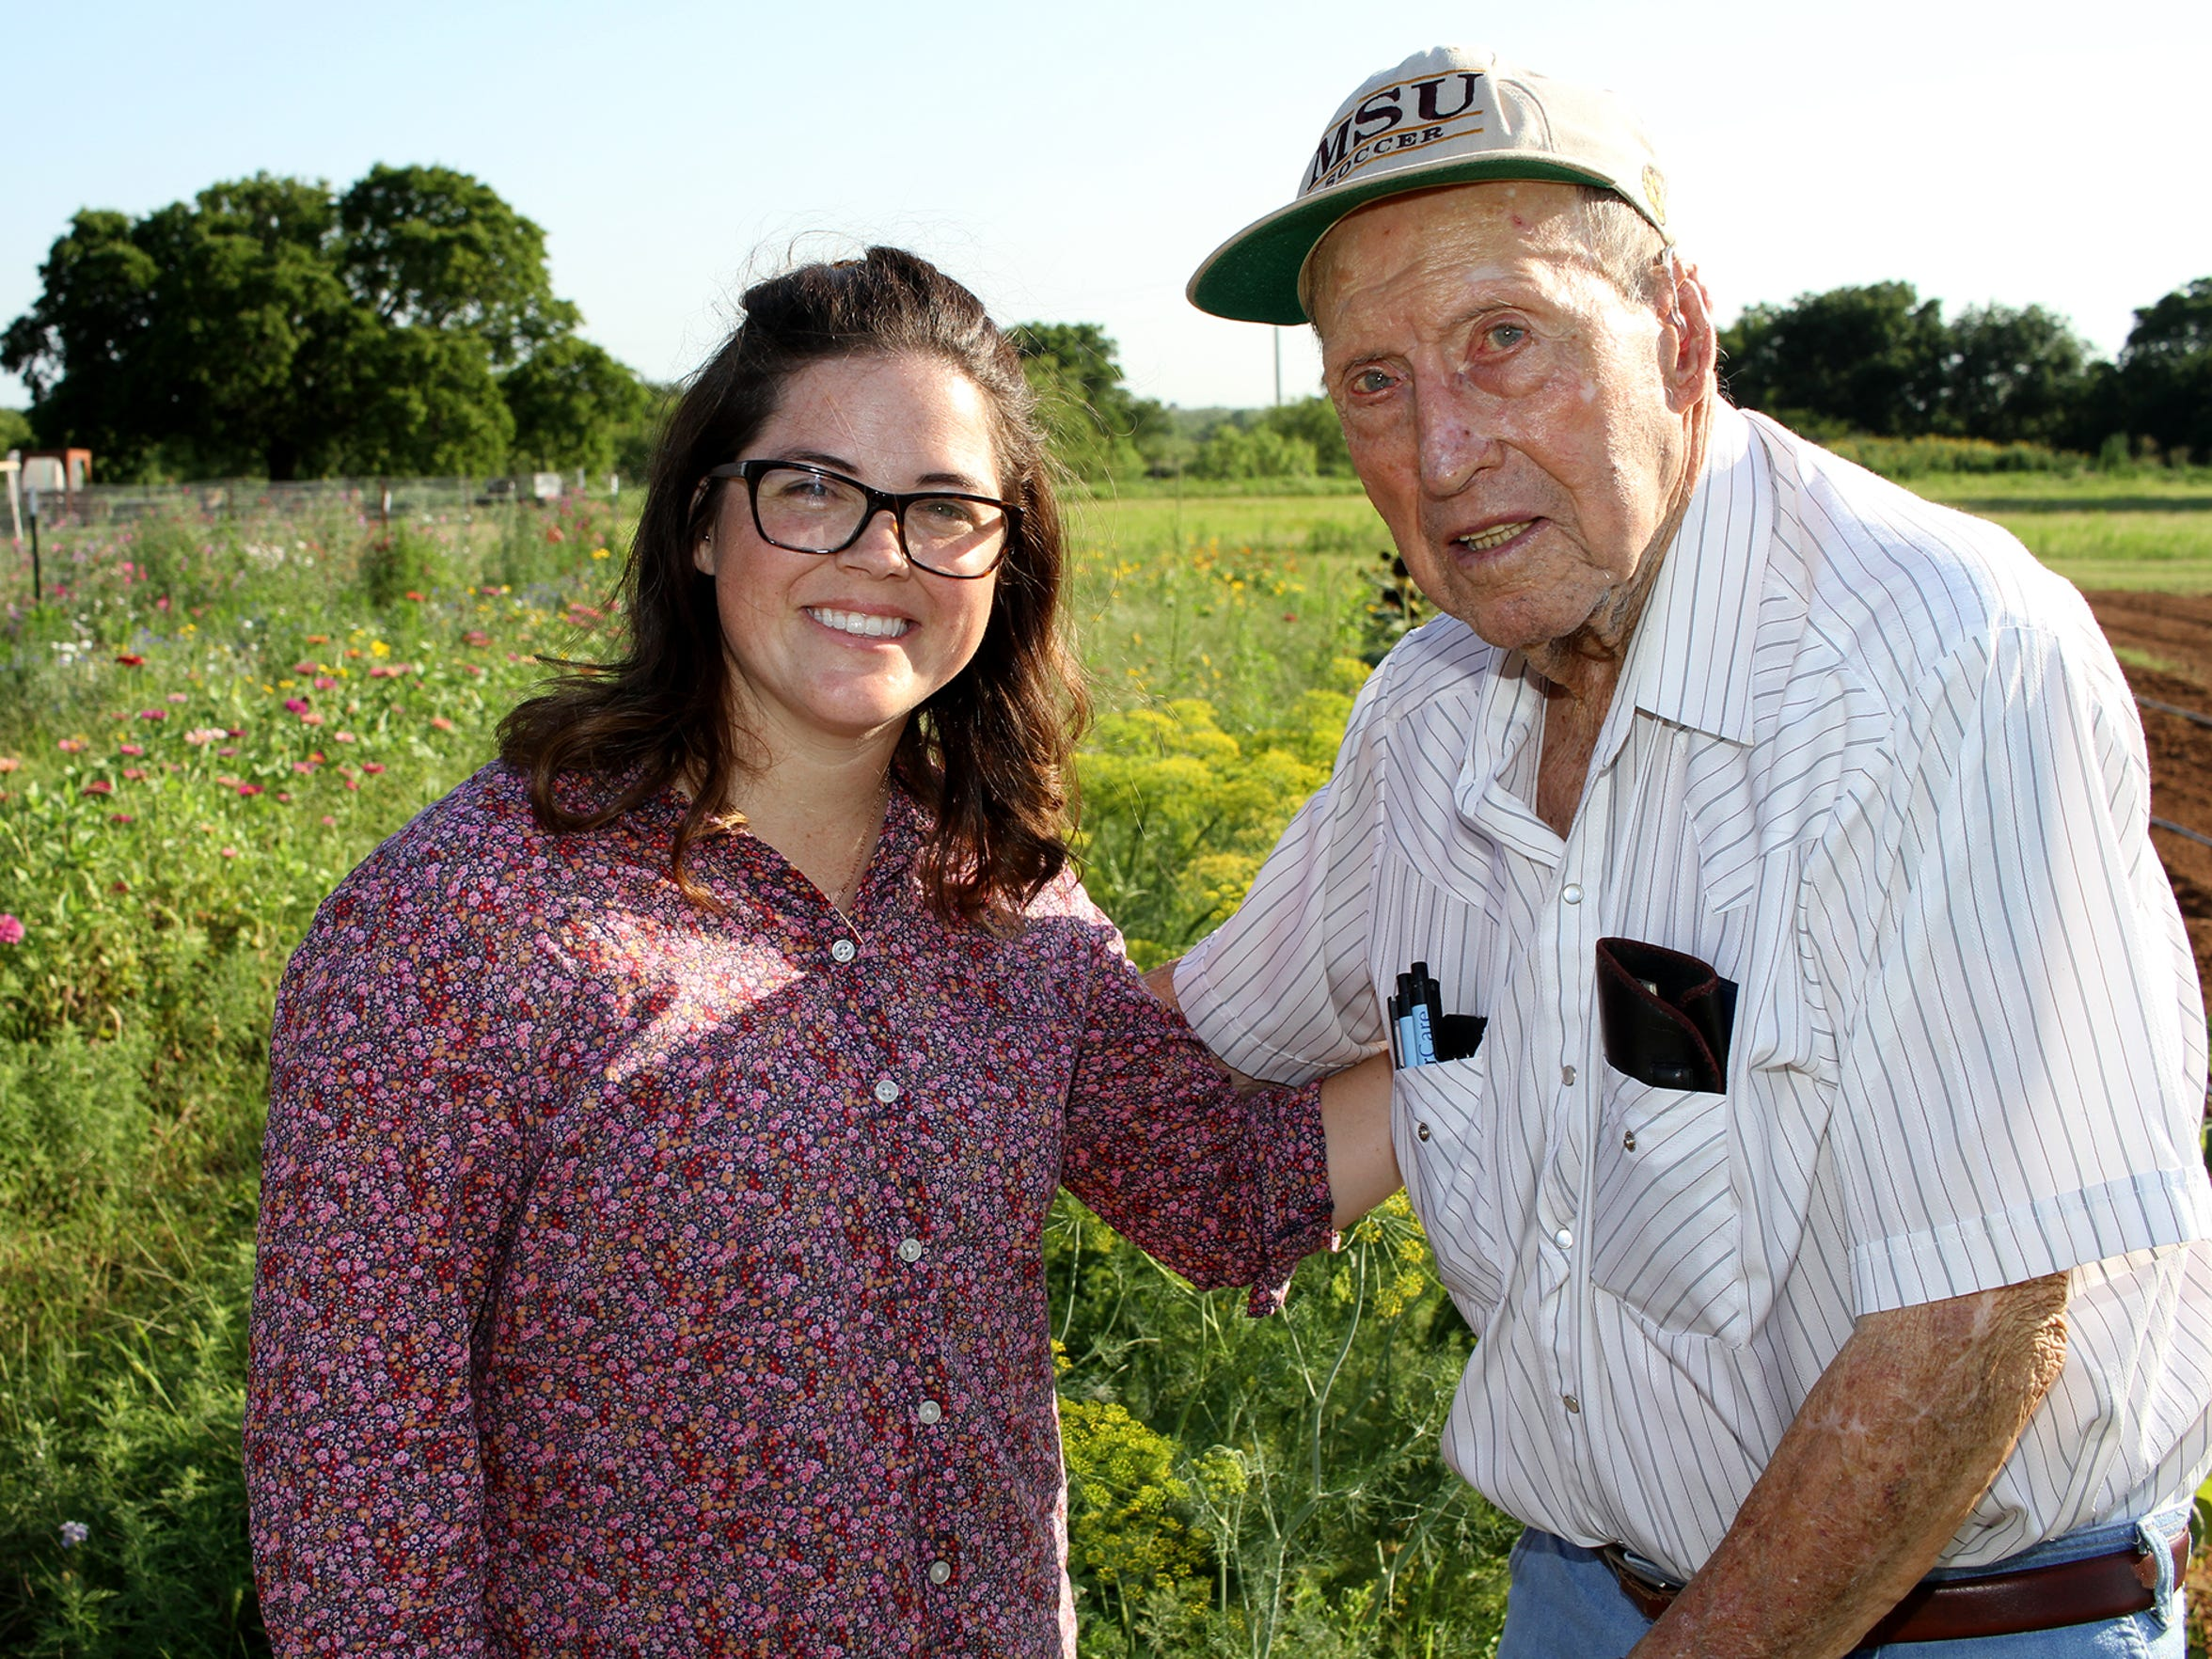 Blair Ramon said she was inspired to go into the flower farm business by her 94-year-old grandfather, Fred Morgan. Ramon started Gilbert Creek Gardens in Burkburnett in 2015.